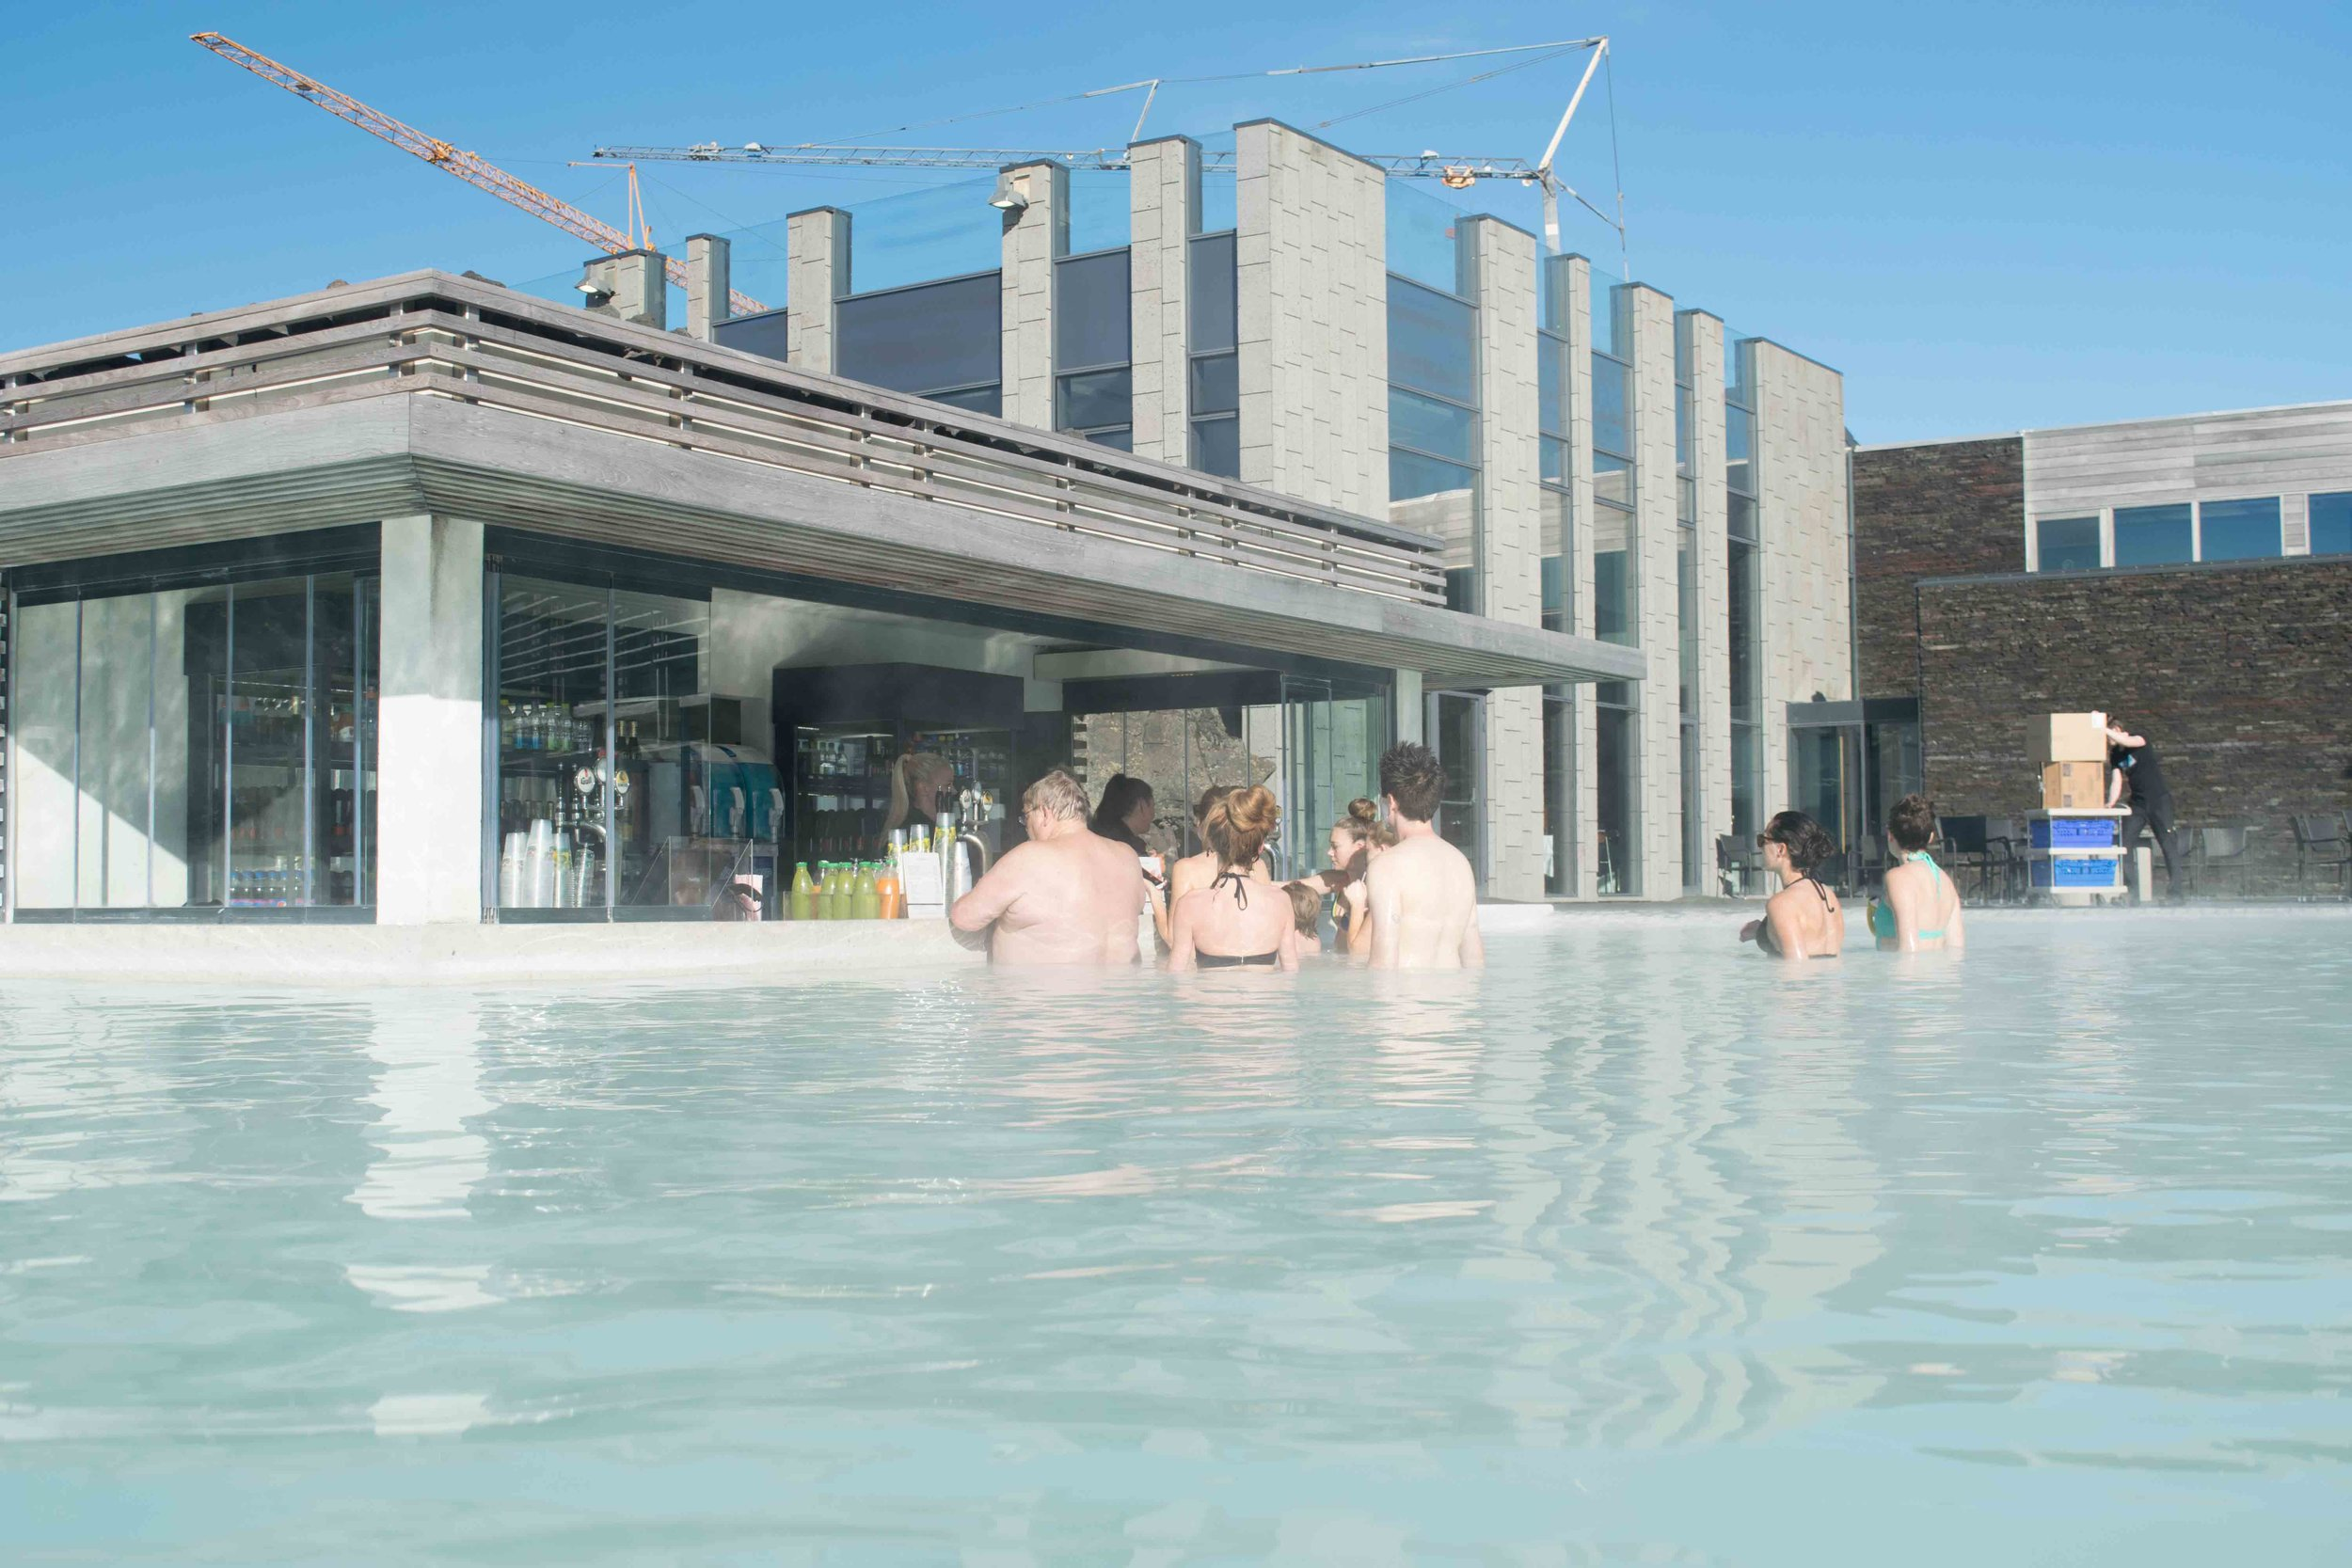 If you were thinking about skipping the Blue Lagoon while in Iceland I suggest you reconsider.